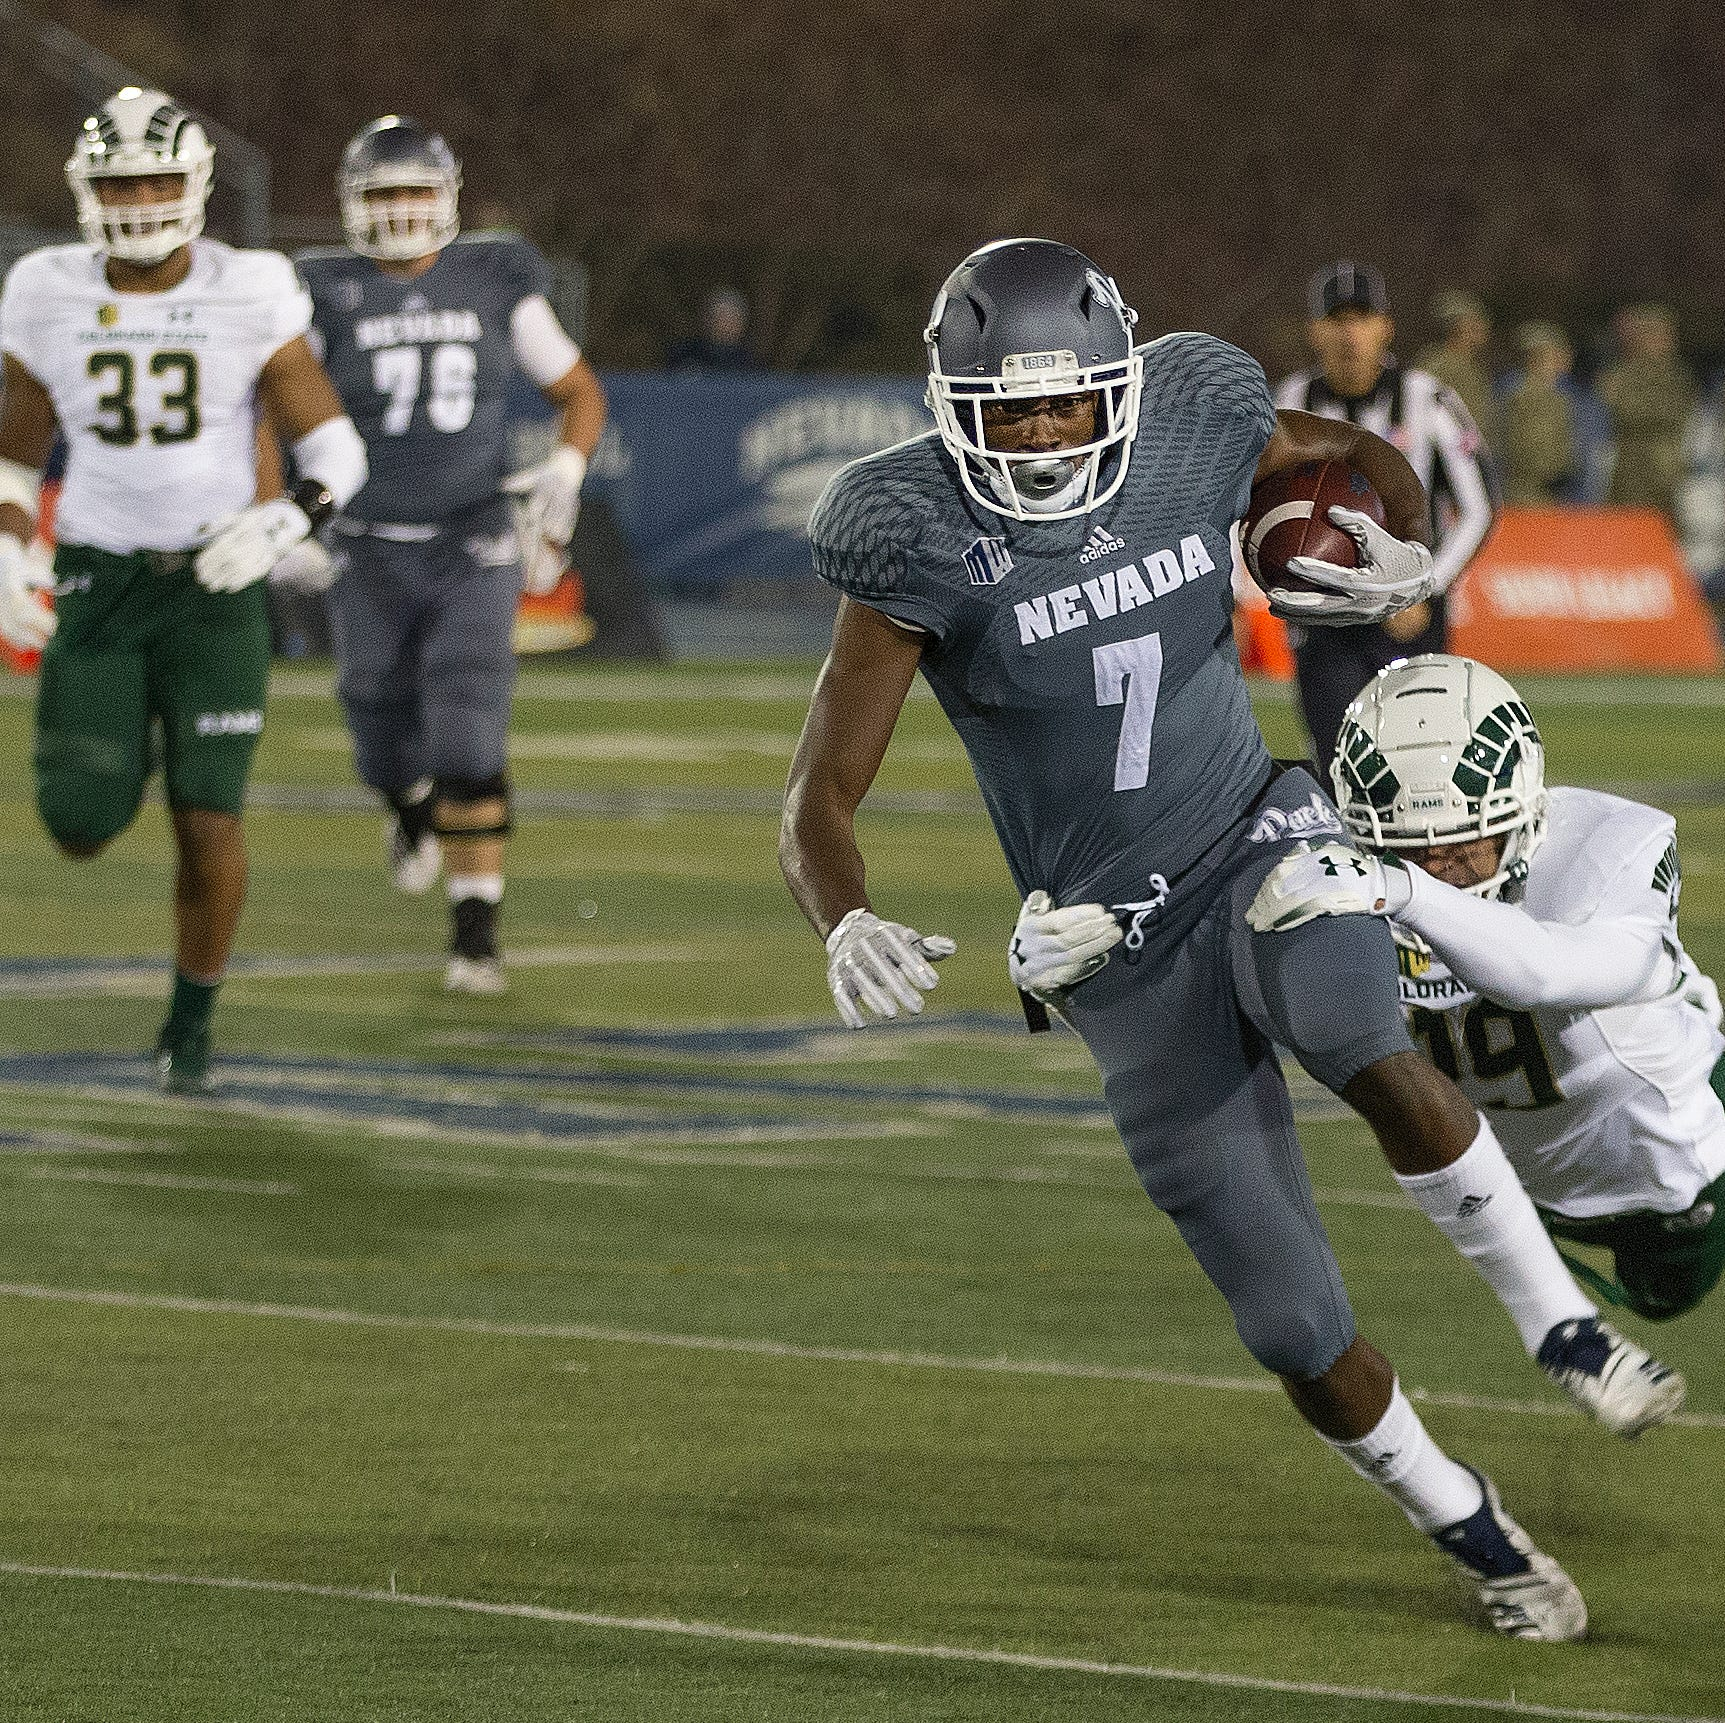 Bowled over: Wolf Pack hammers Colorado State to clinch bowl spot